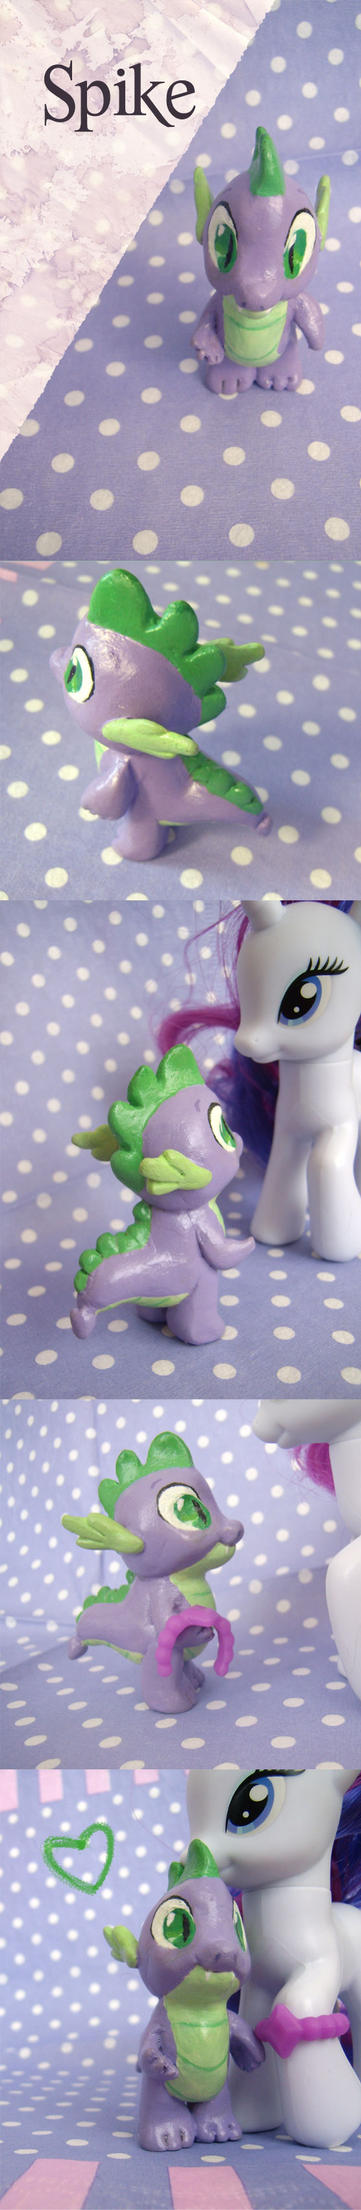 bi-pedal Spike from MLP:FIM -for sale- by ankin